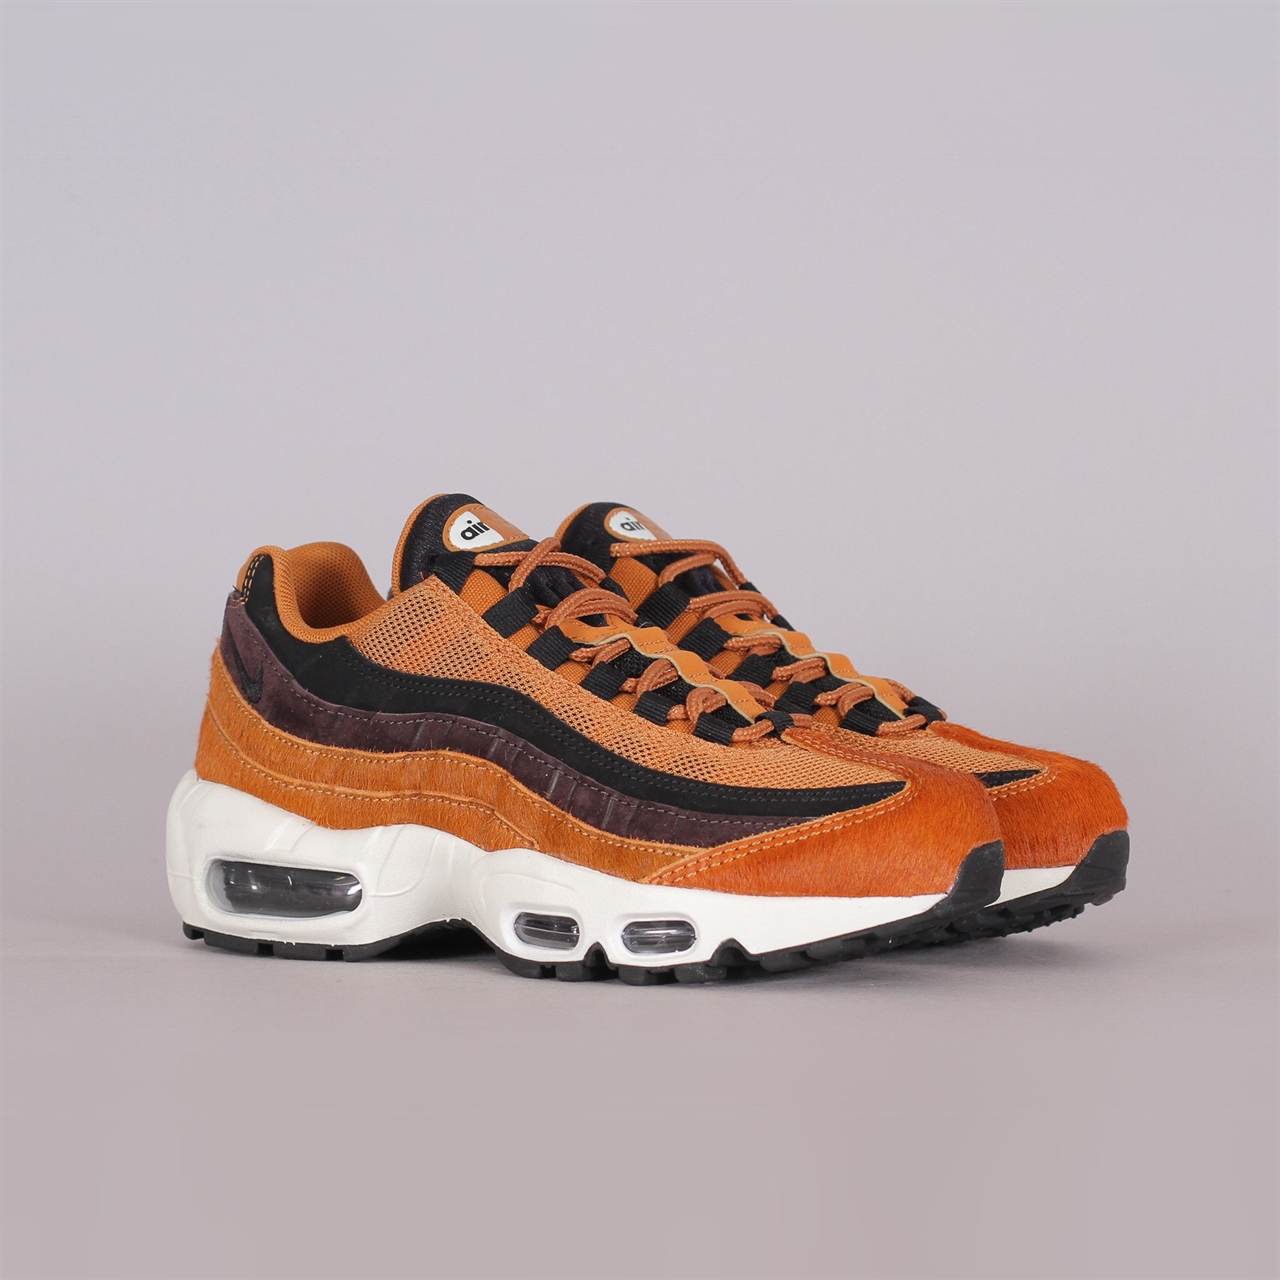 separation shoes 0de0e 31b0d nike sportswear womens air max 95 lx aa1103 200